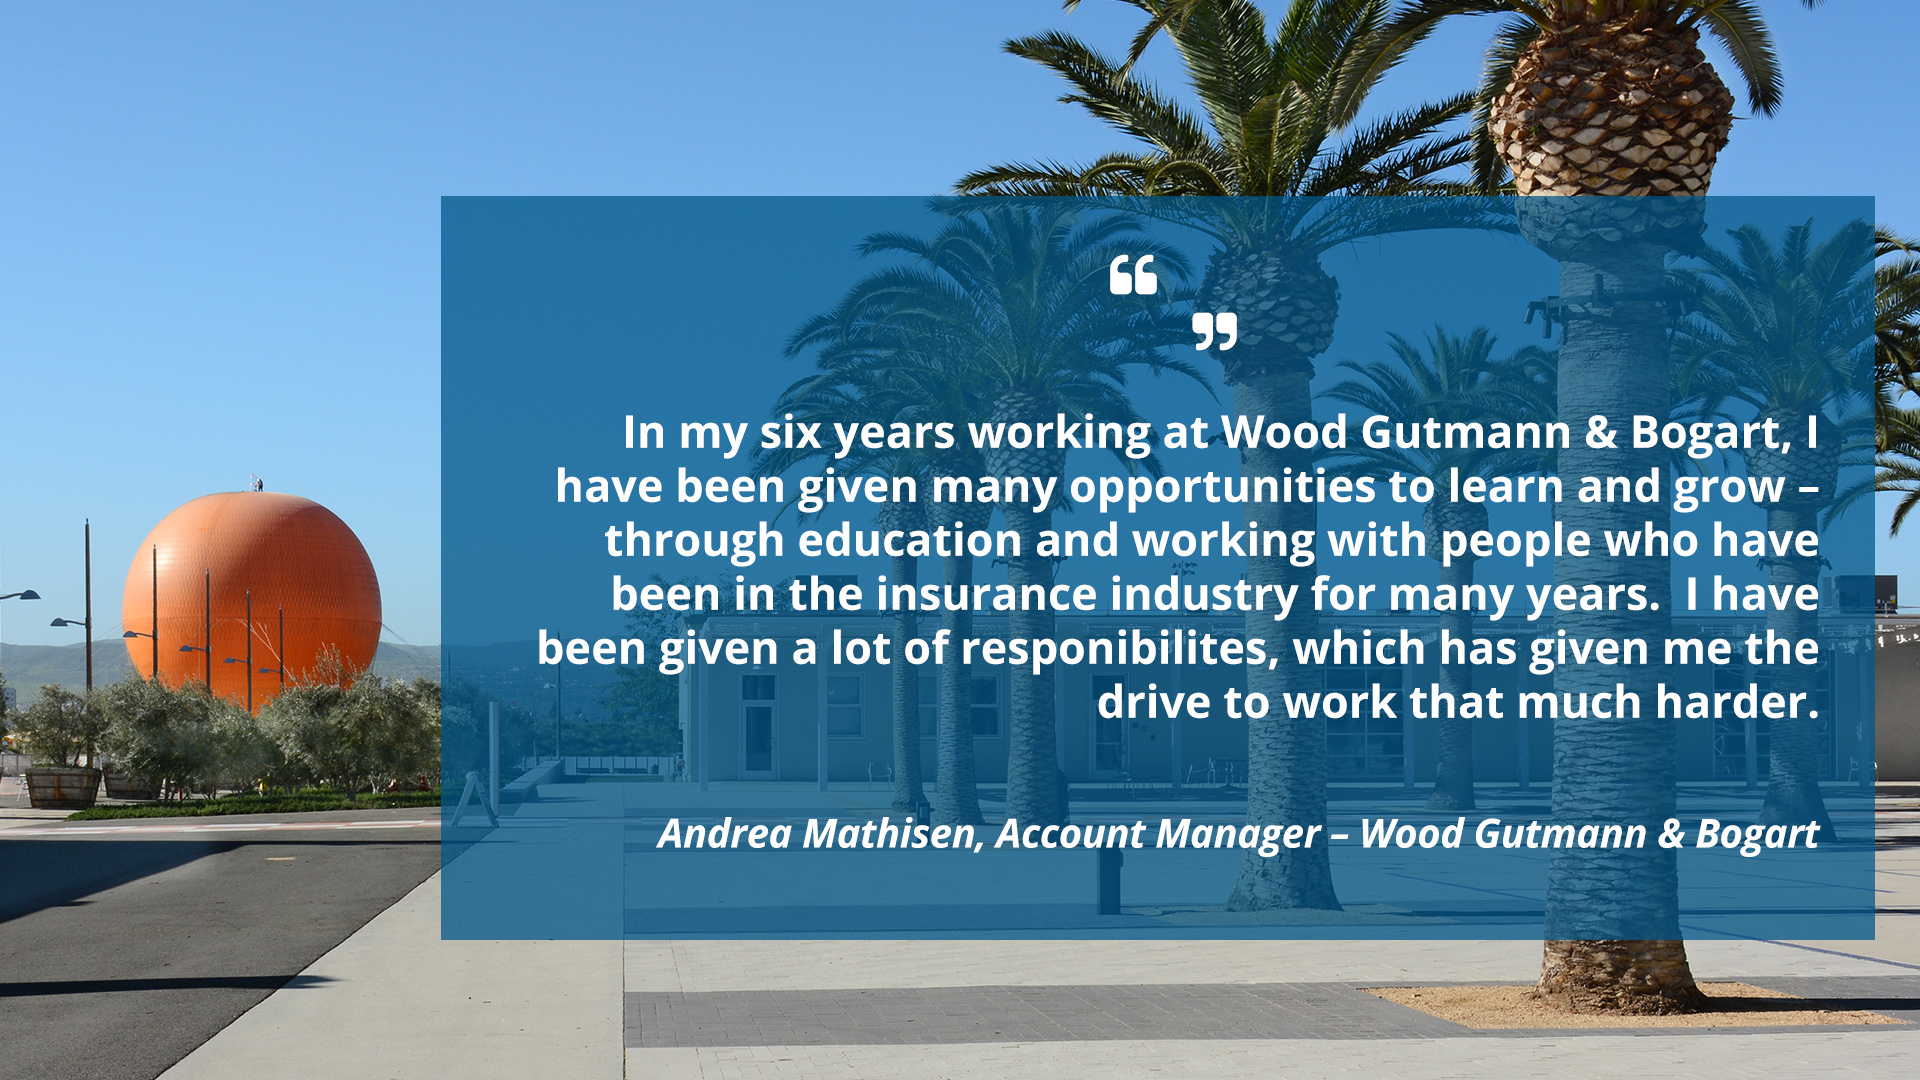 In my six years working at Wood Gutmann & Bogart, I have been given many opportunities to learn and grow – through education and working with people who have been in the insurance industry for many years. I have been given a lot of responsibilities, which has given me the drive to work that much harder.